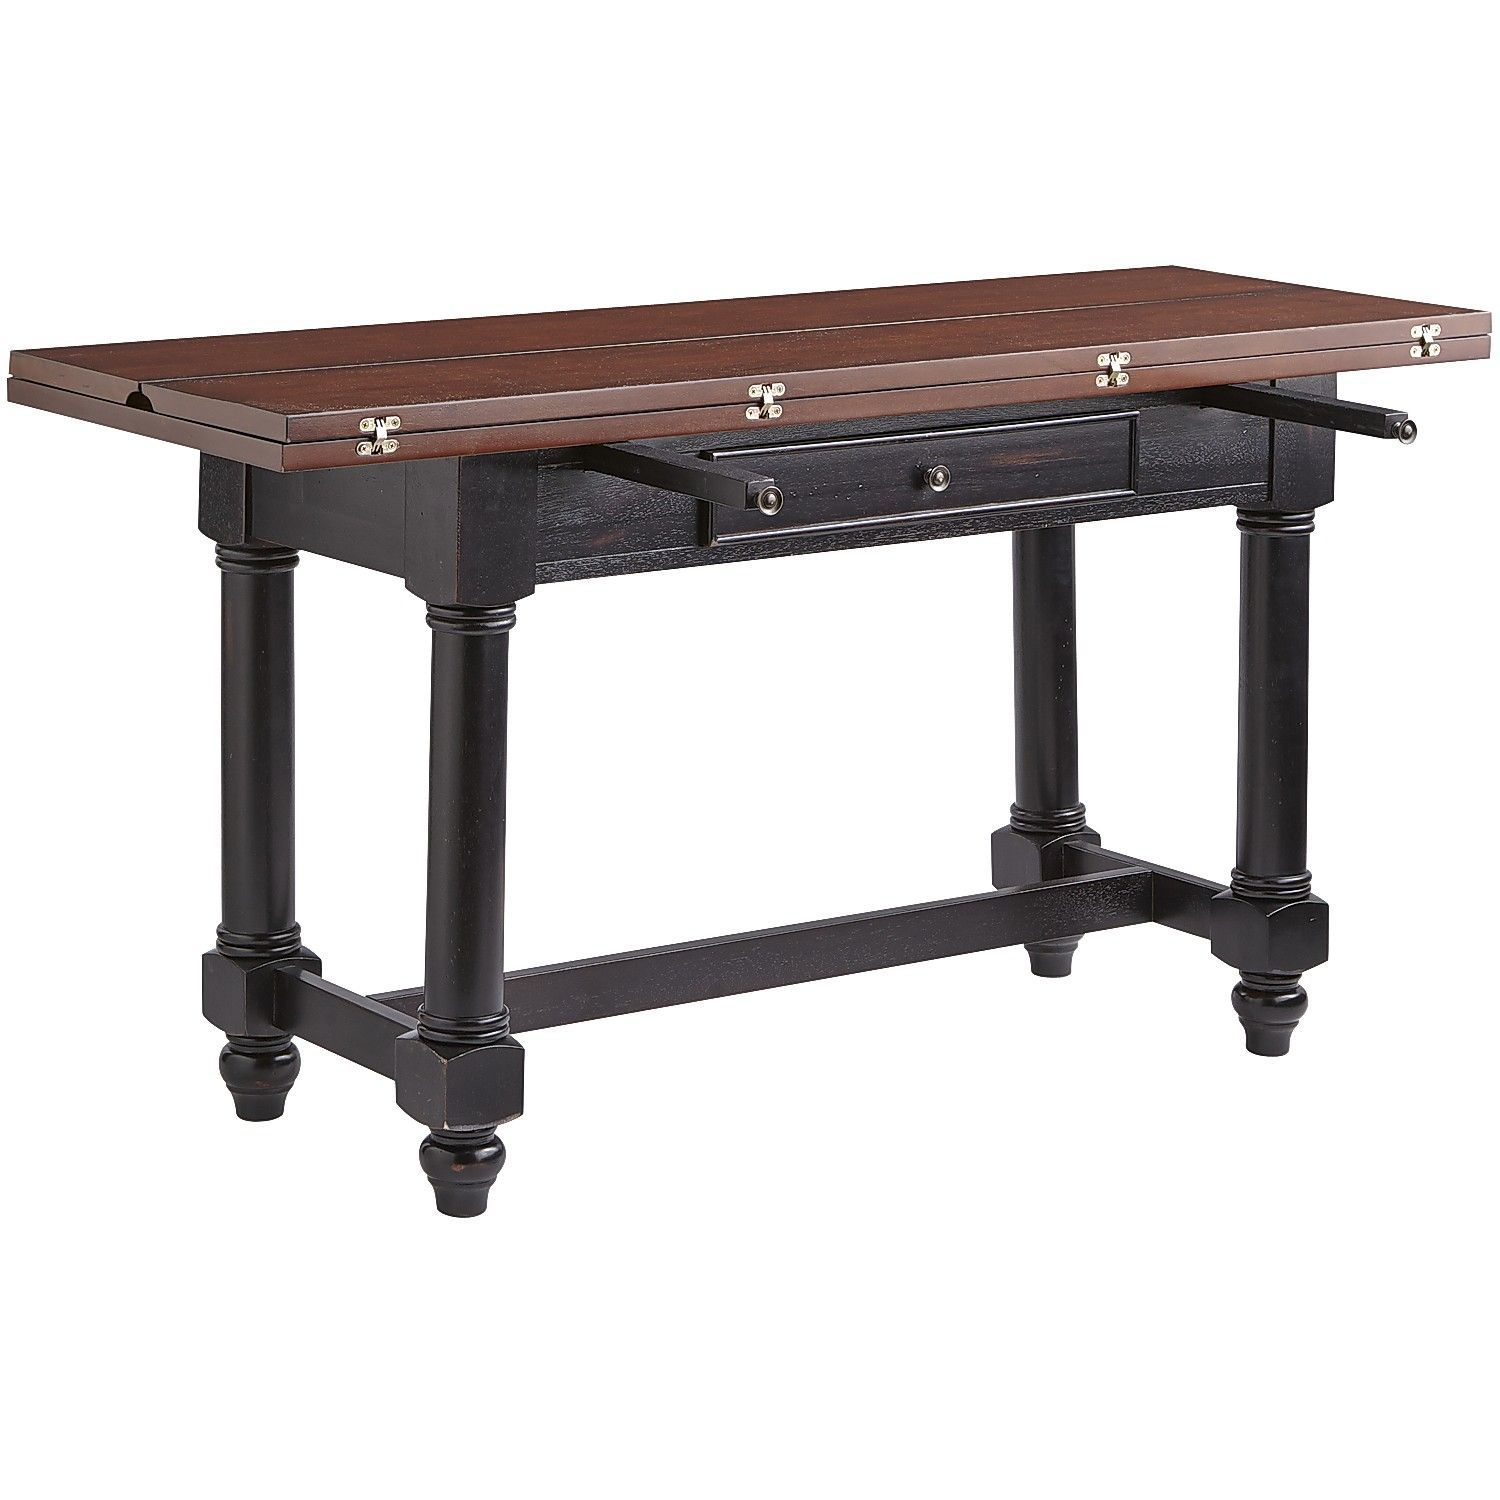 Dining Table With Leaves That Pull Out blake drop leaf table - pier 1 leaves fold over top, with support